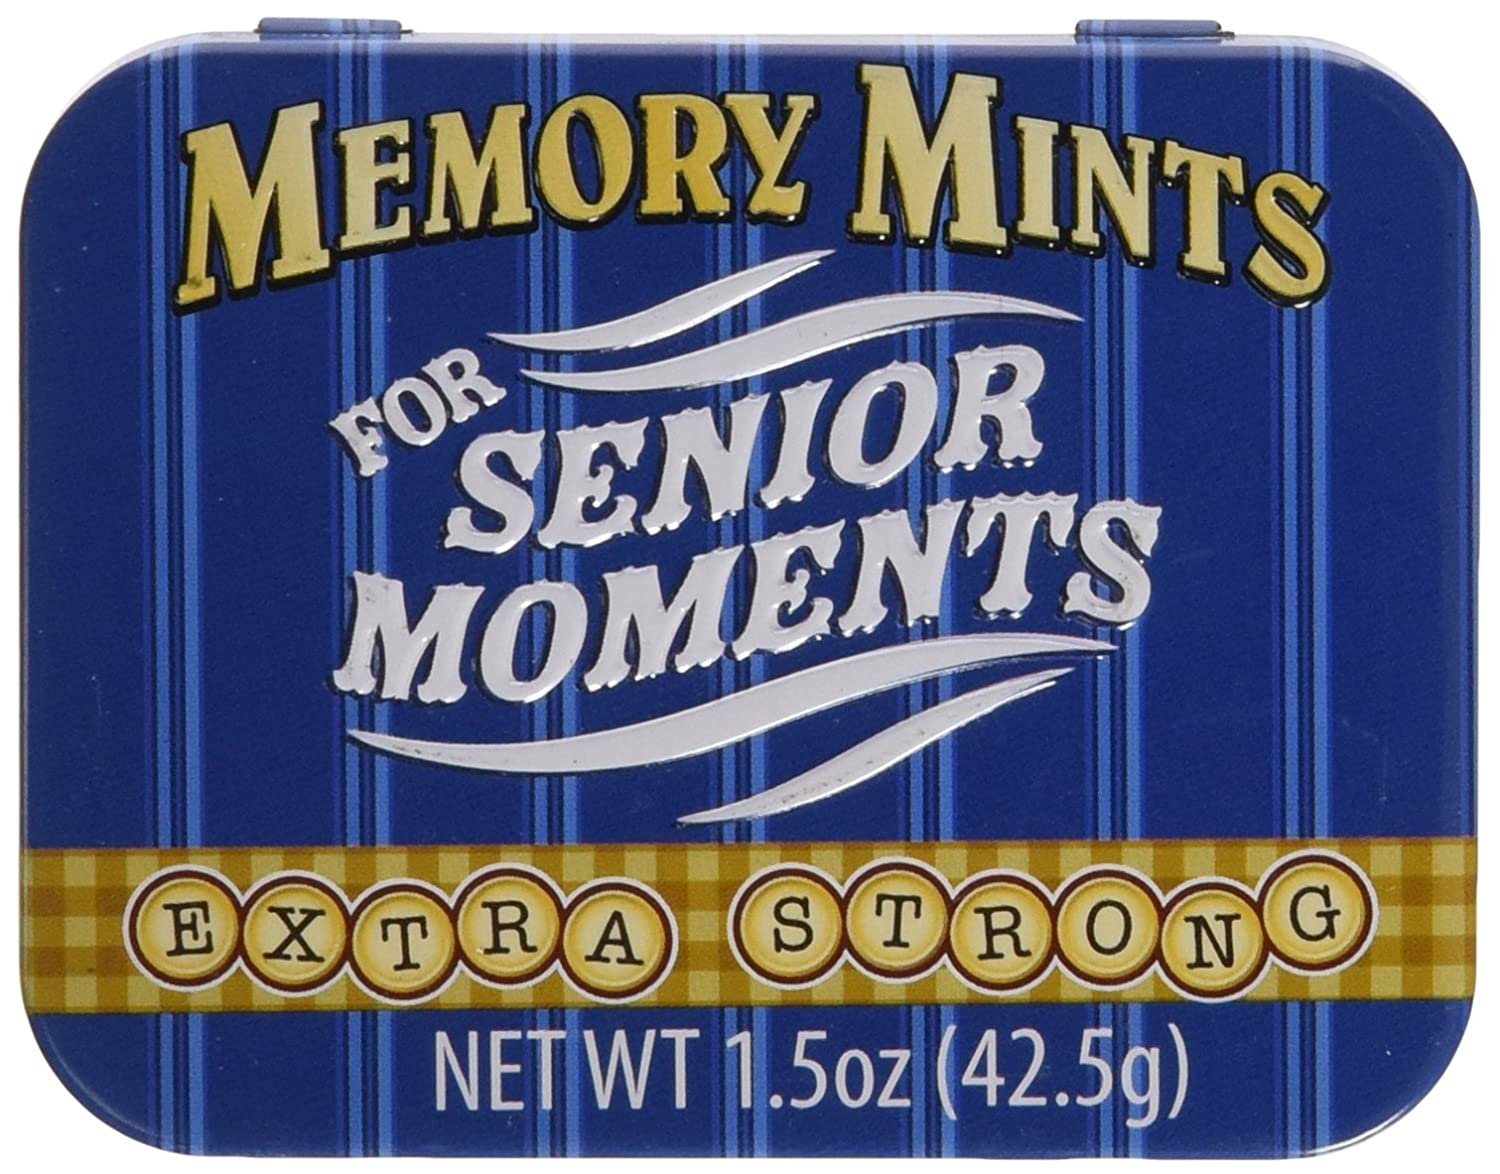 Memory ints for Senior Moments